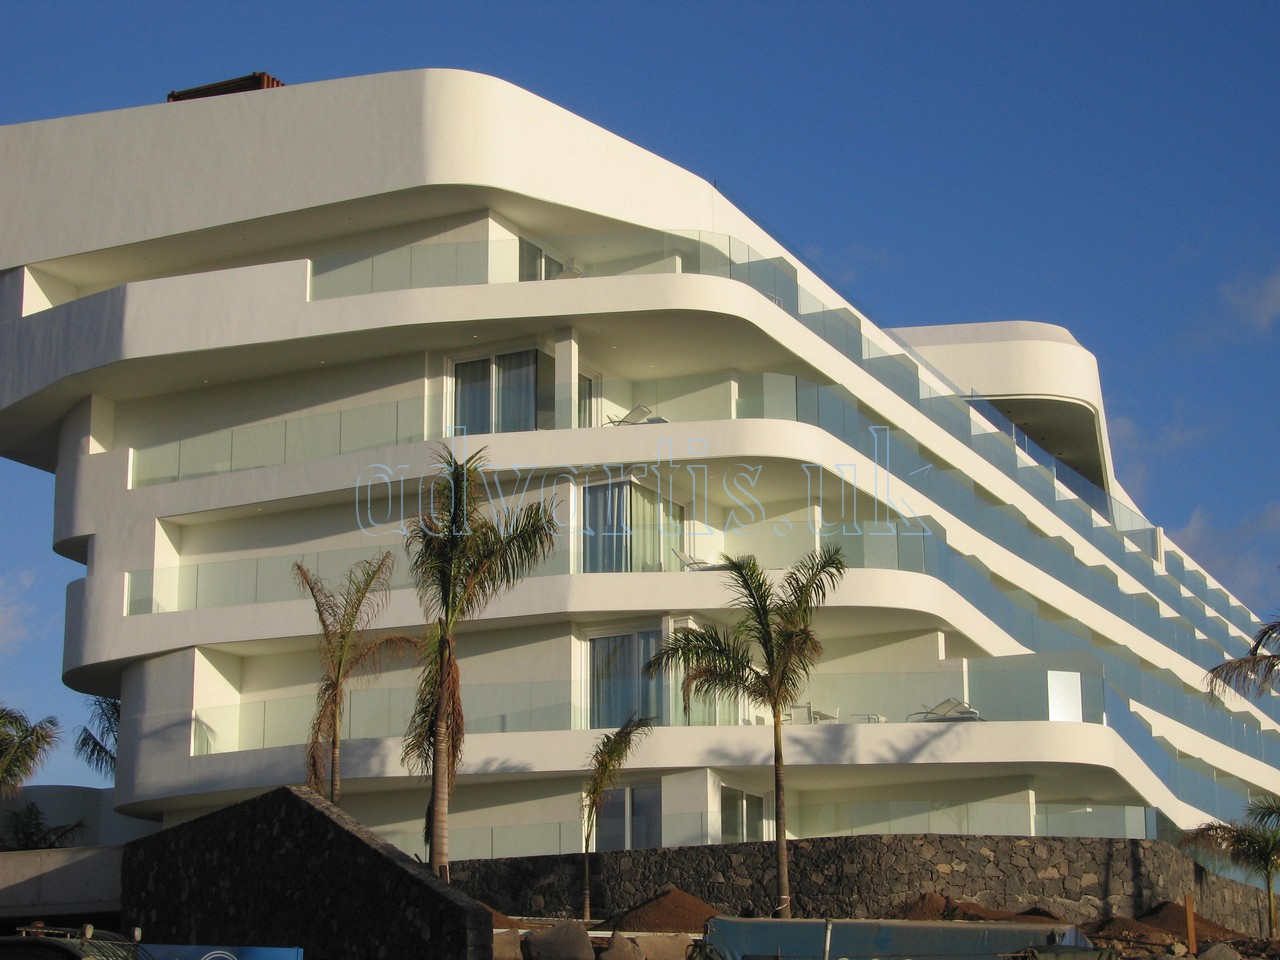 Royal Hideaway Corales Resort 5 star hotel opens its doors in Adeje, Tenerife